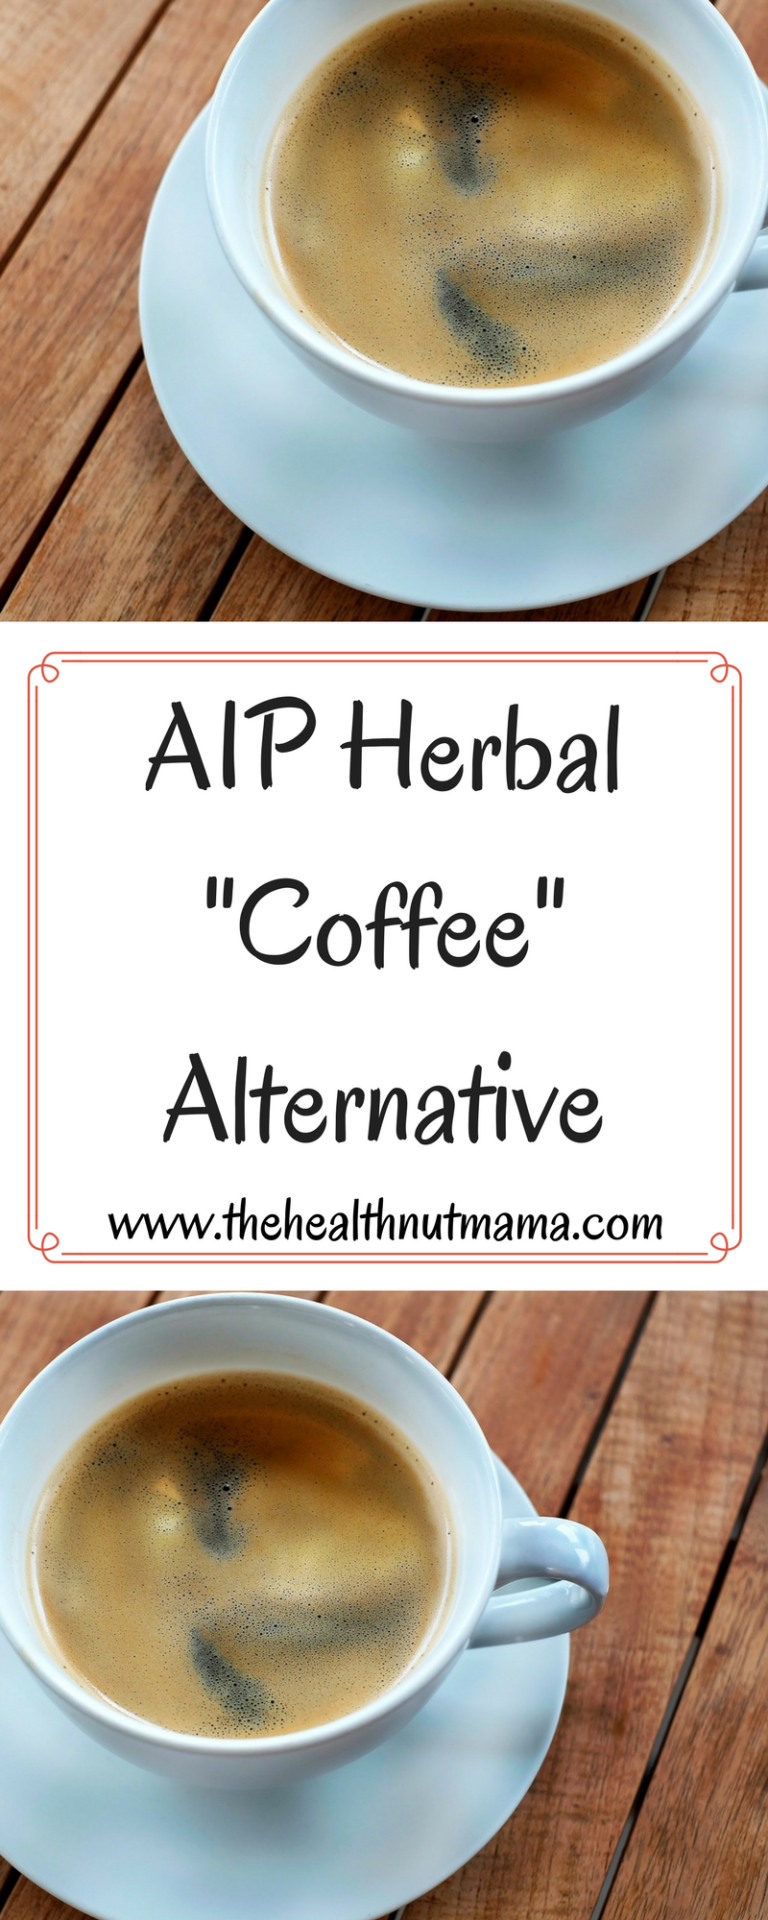 If you are looking for a coffee alternative, here is a